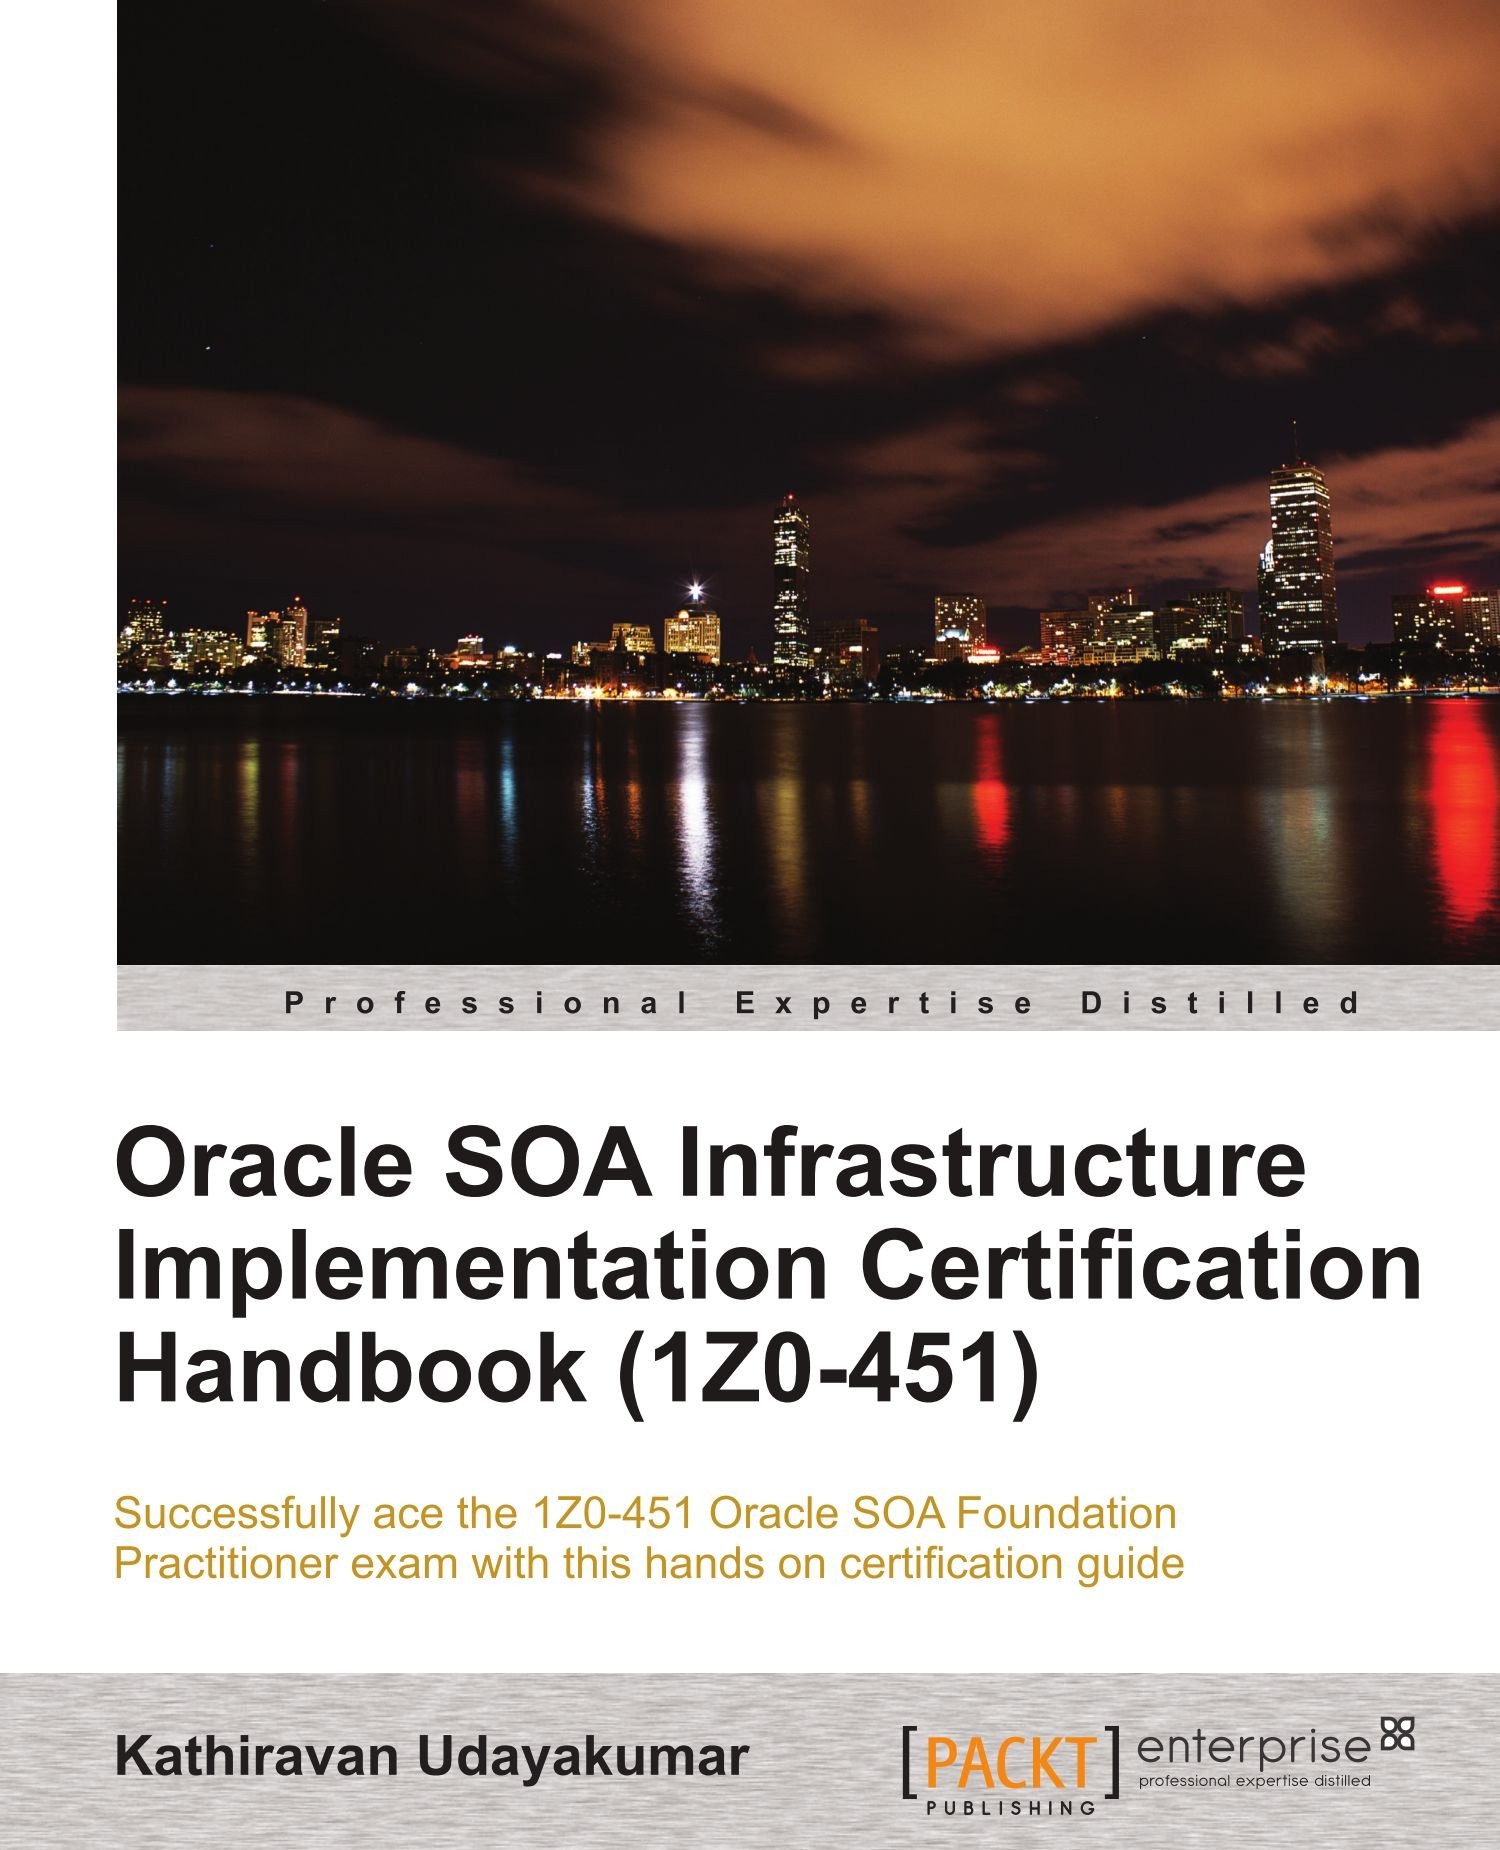 Oracle soa infrastructure implementation certification handbook oracle soa infrastructure implementation certification handbook 1z0 451 kathiravan udayakumar 9781849683401 amazon books 1betcityfo Image collections